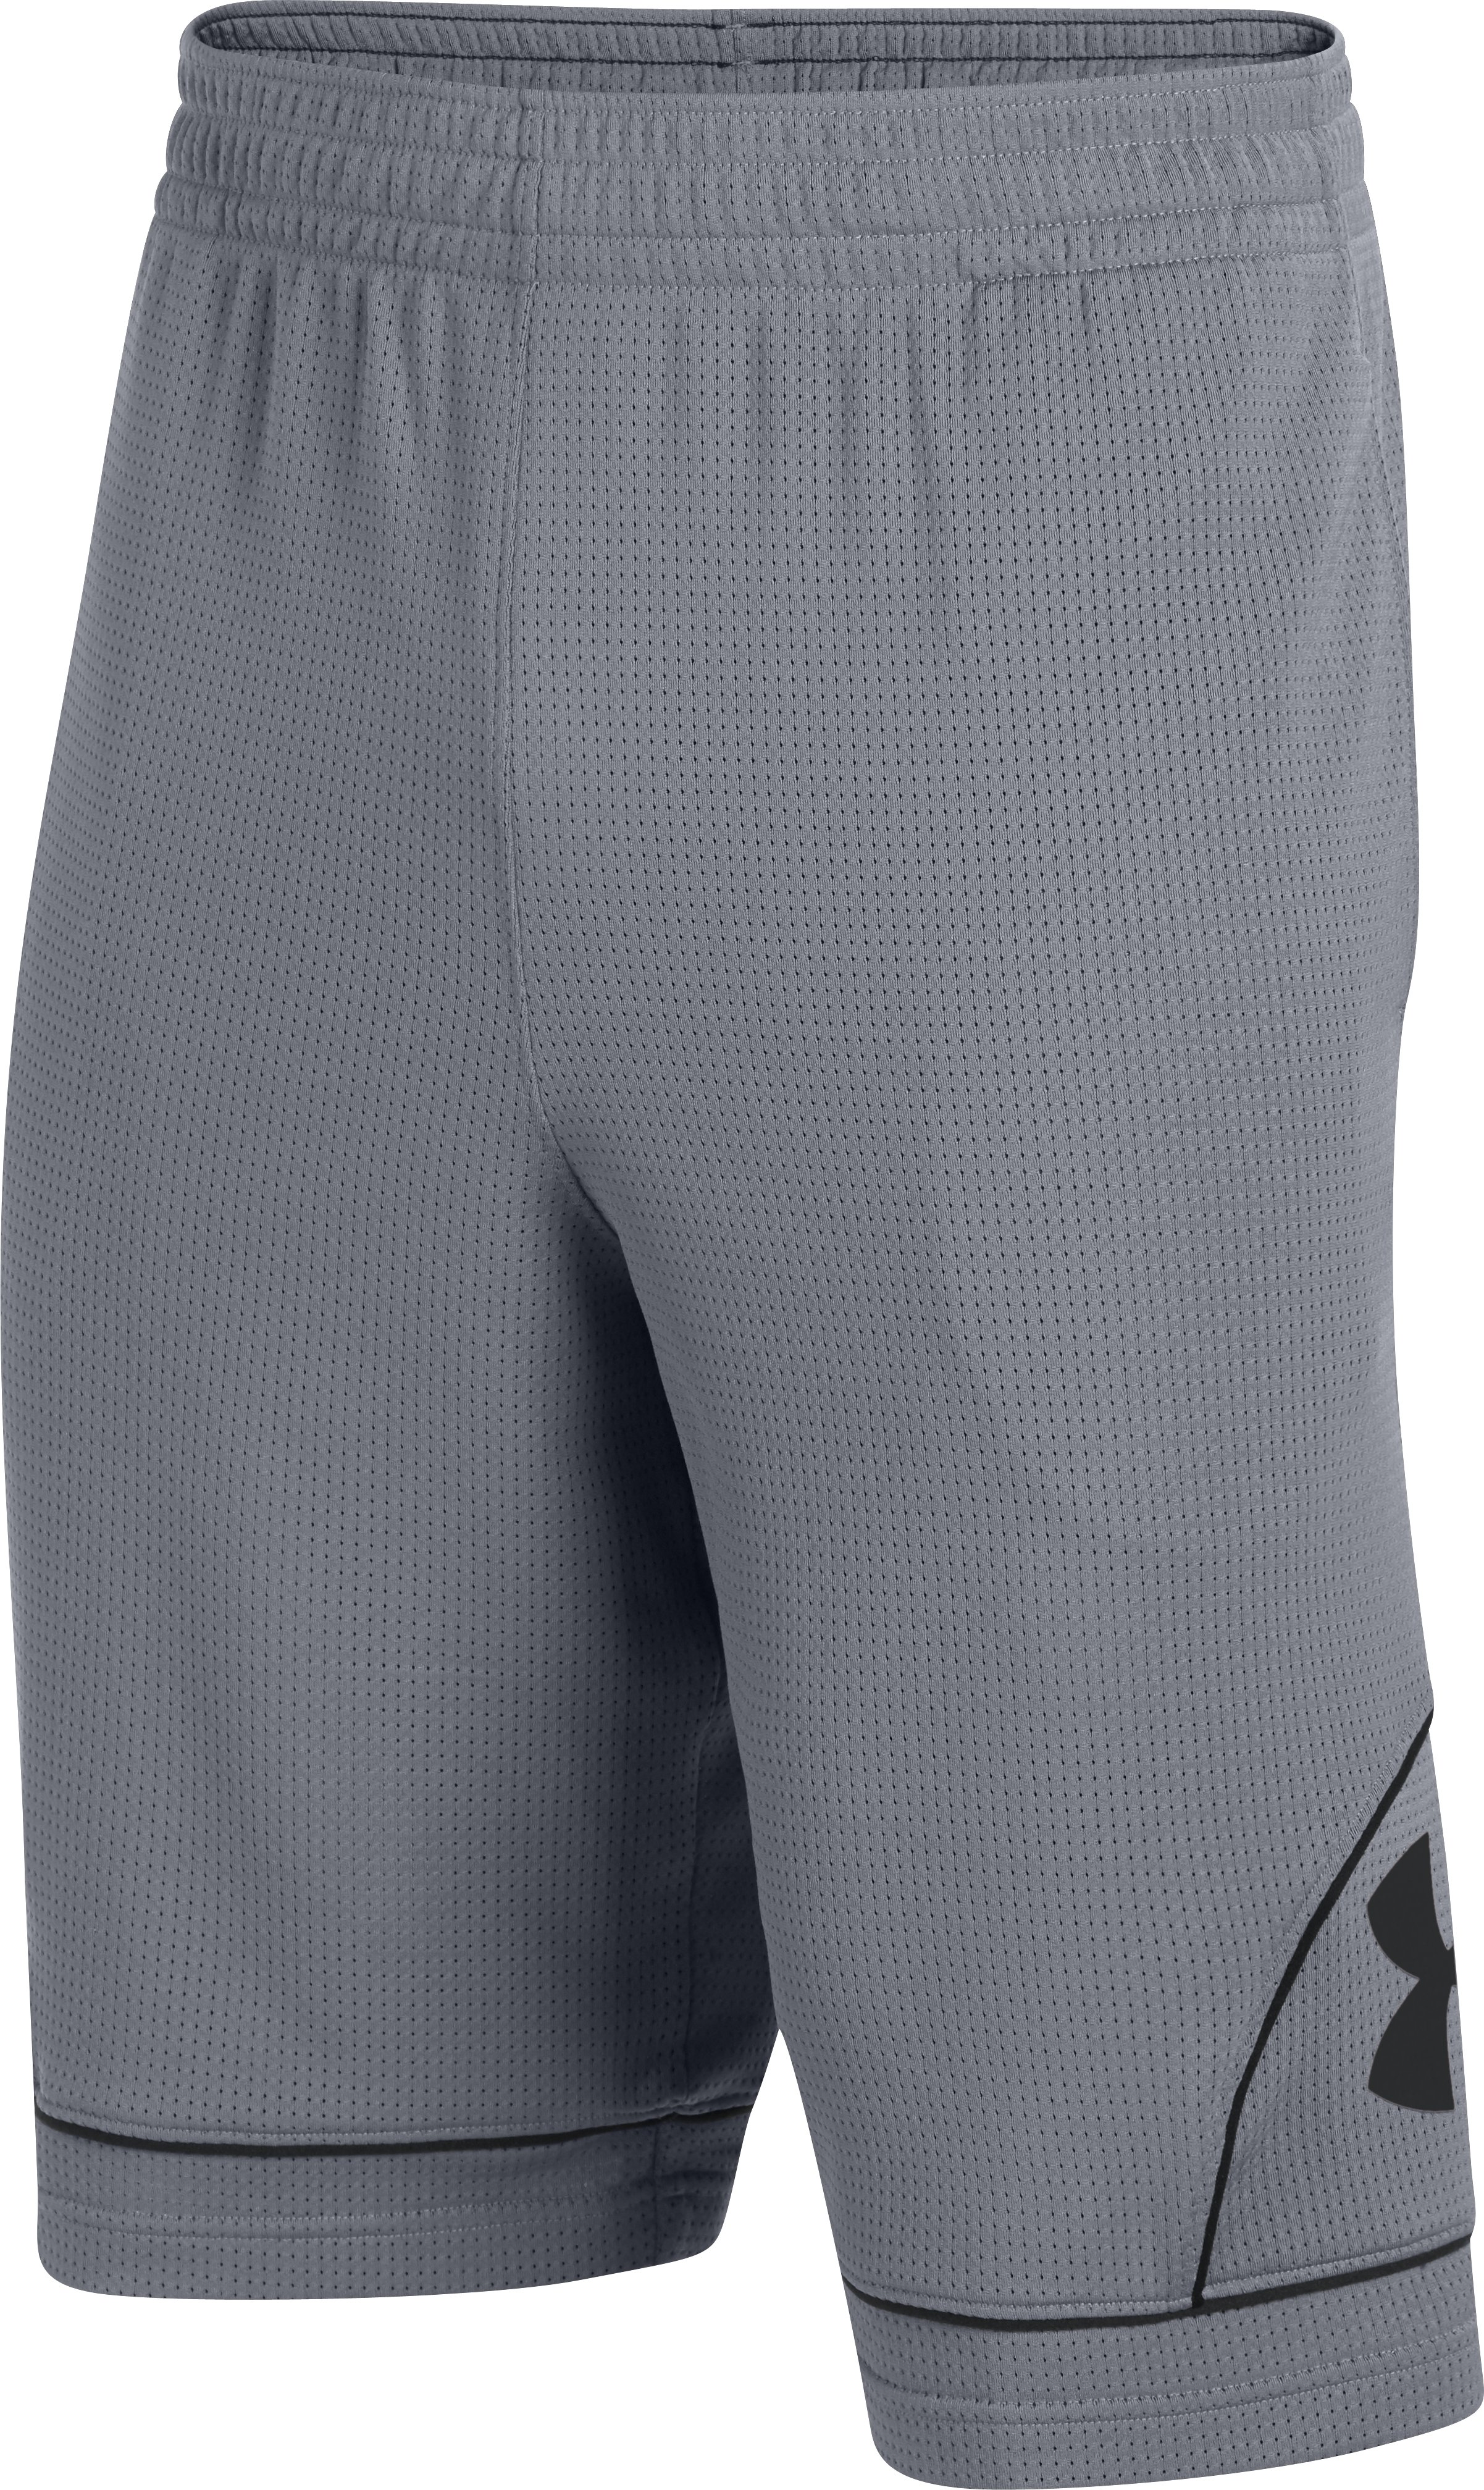 Men's UA Freight Game Solid Shorts, Steel